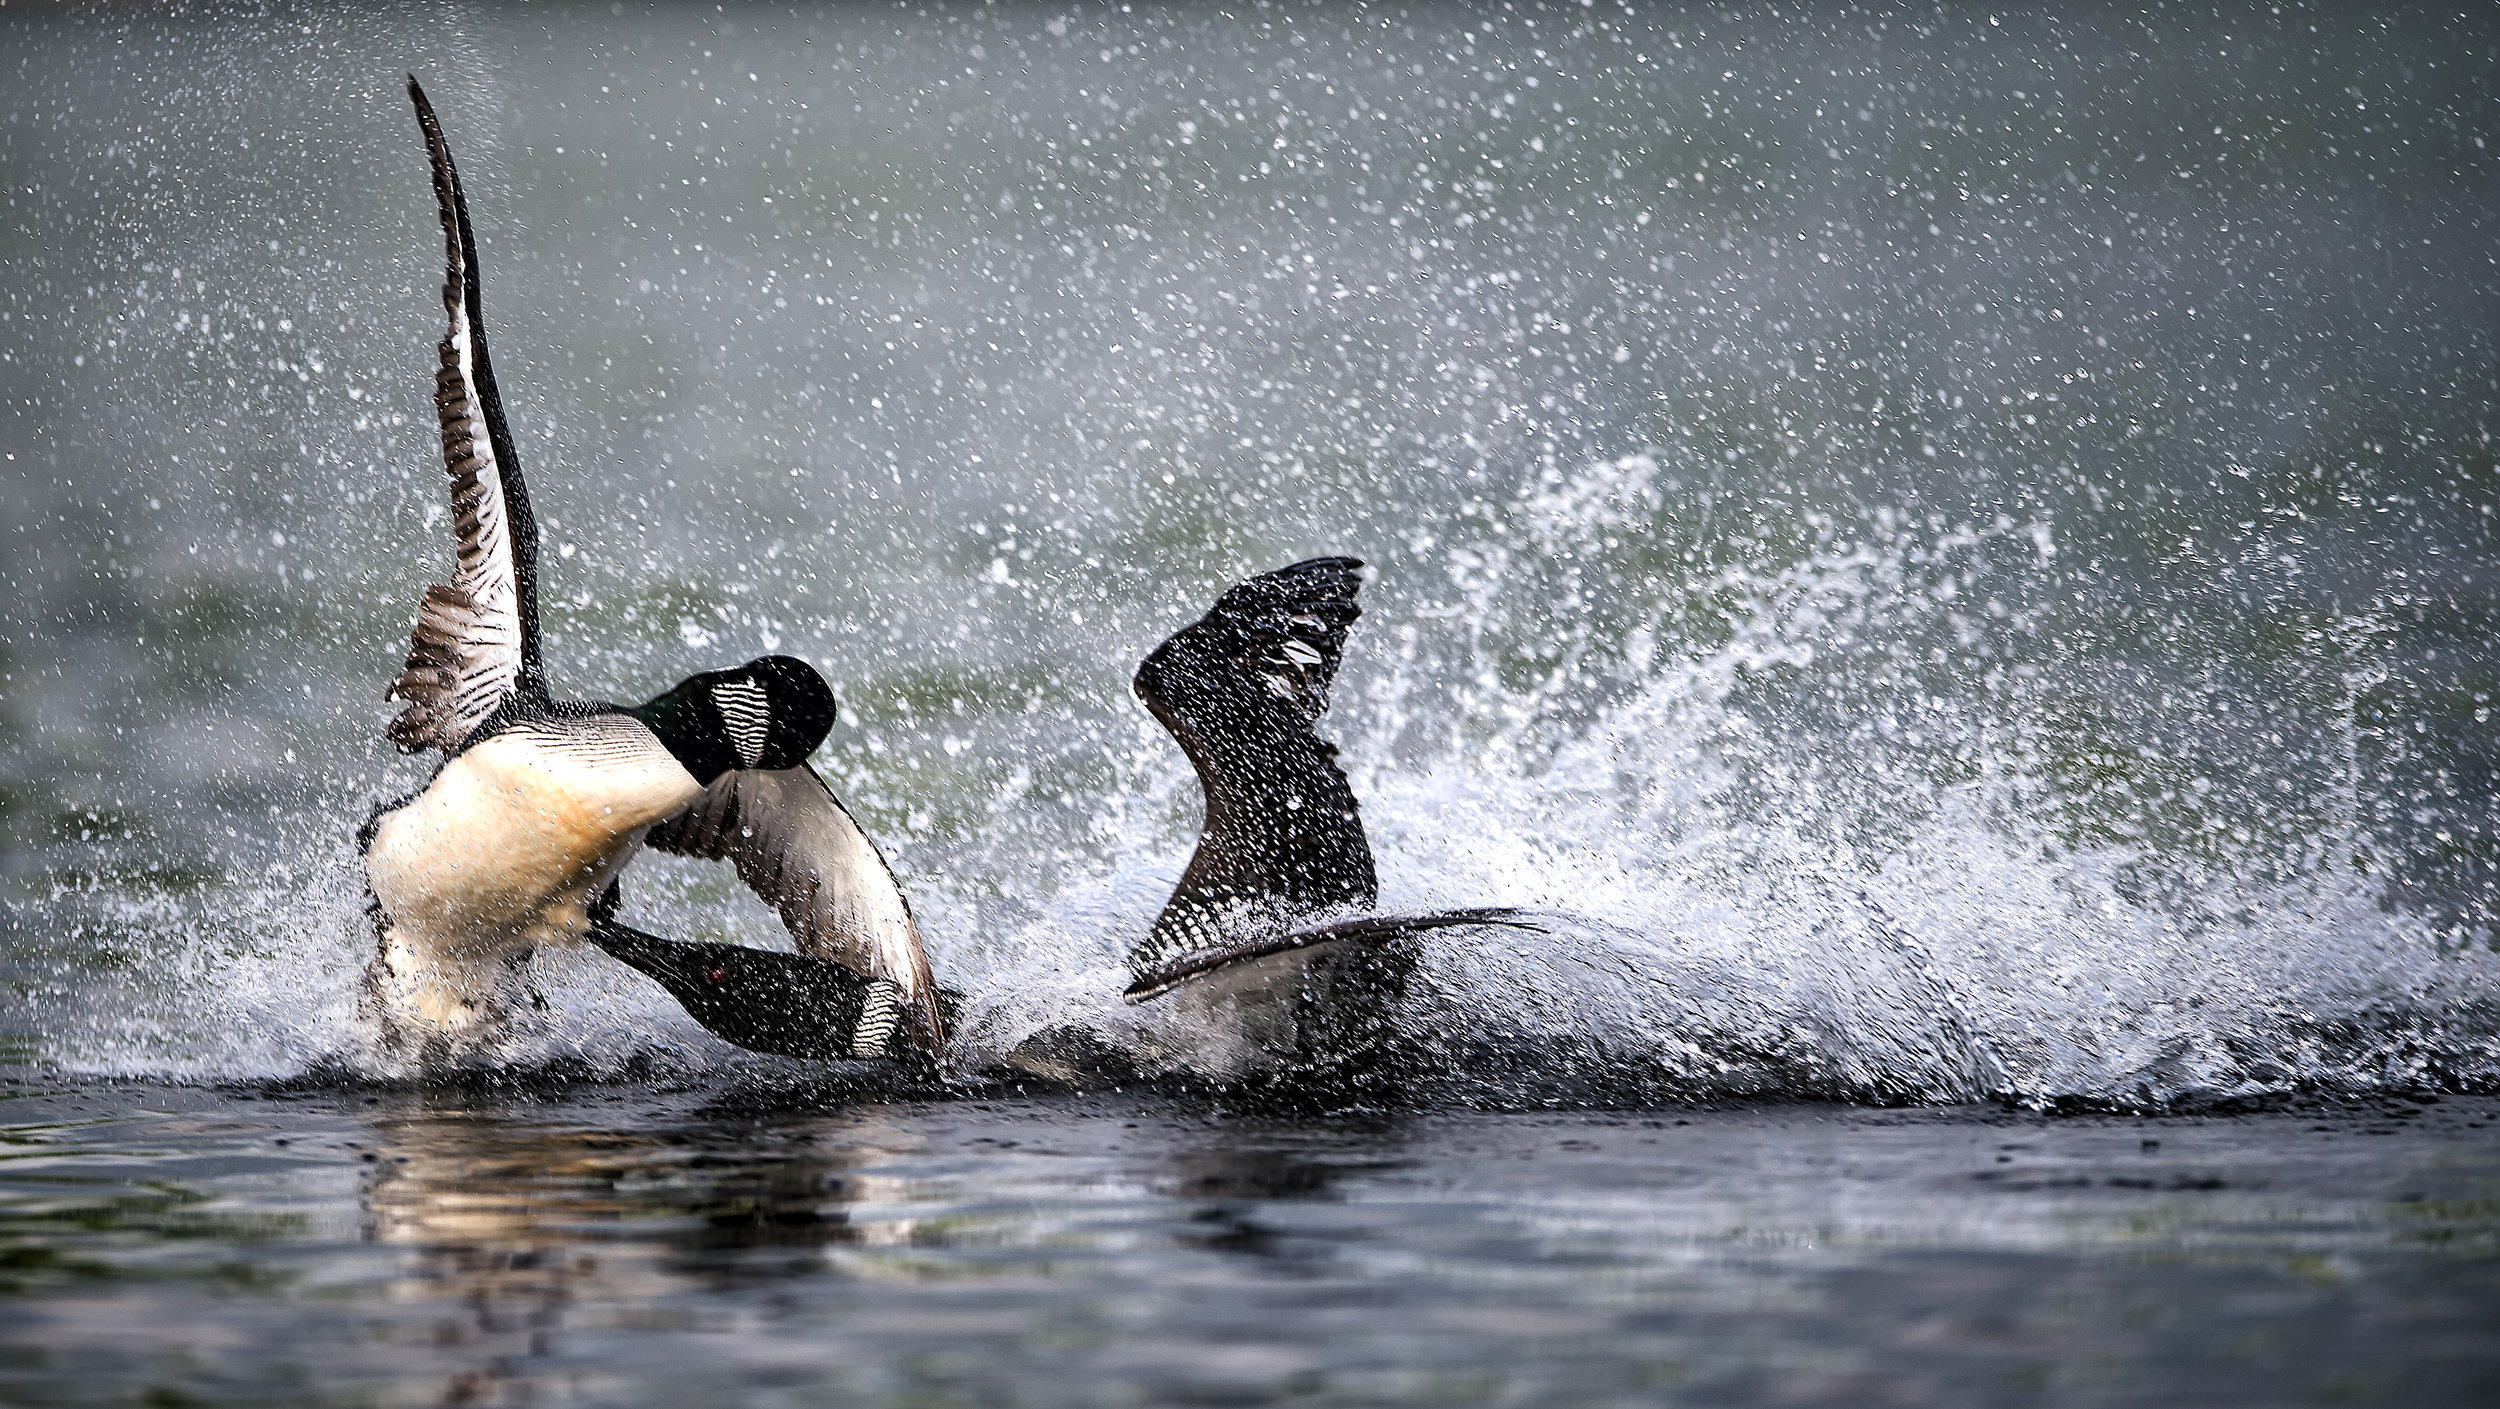 Battle of the loon by Kevin K Pepper